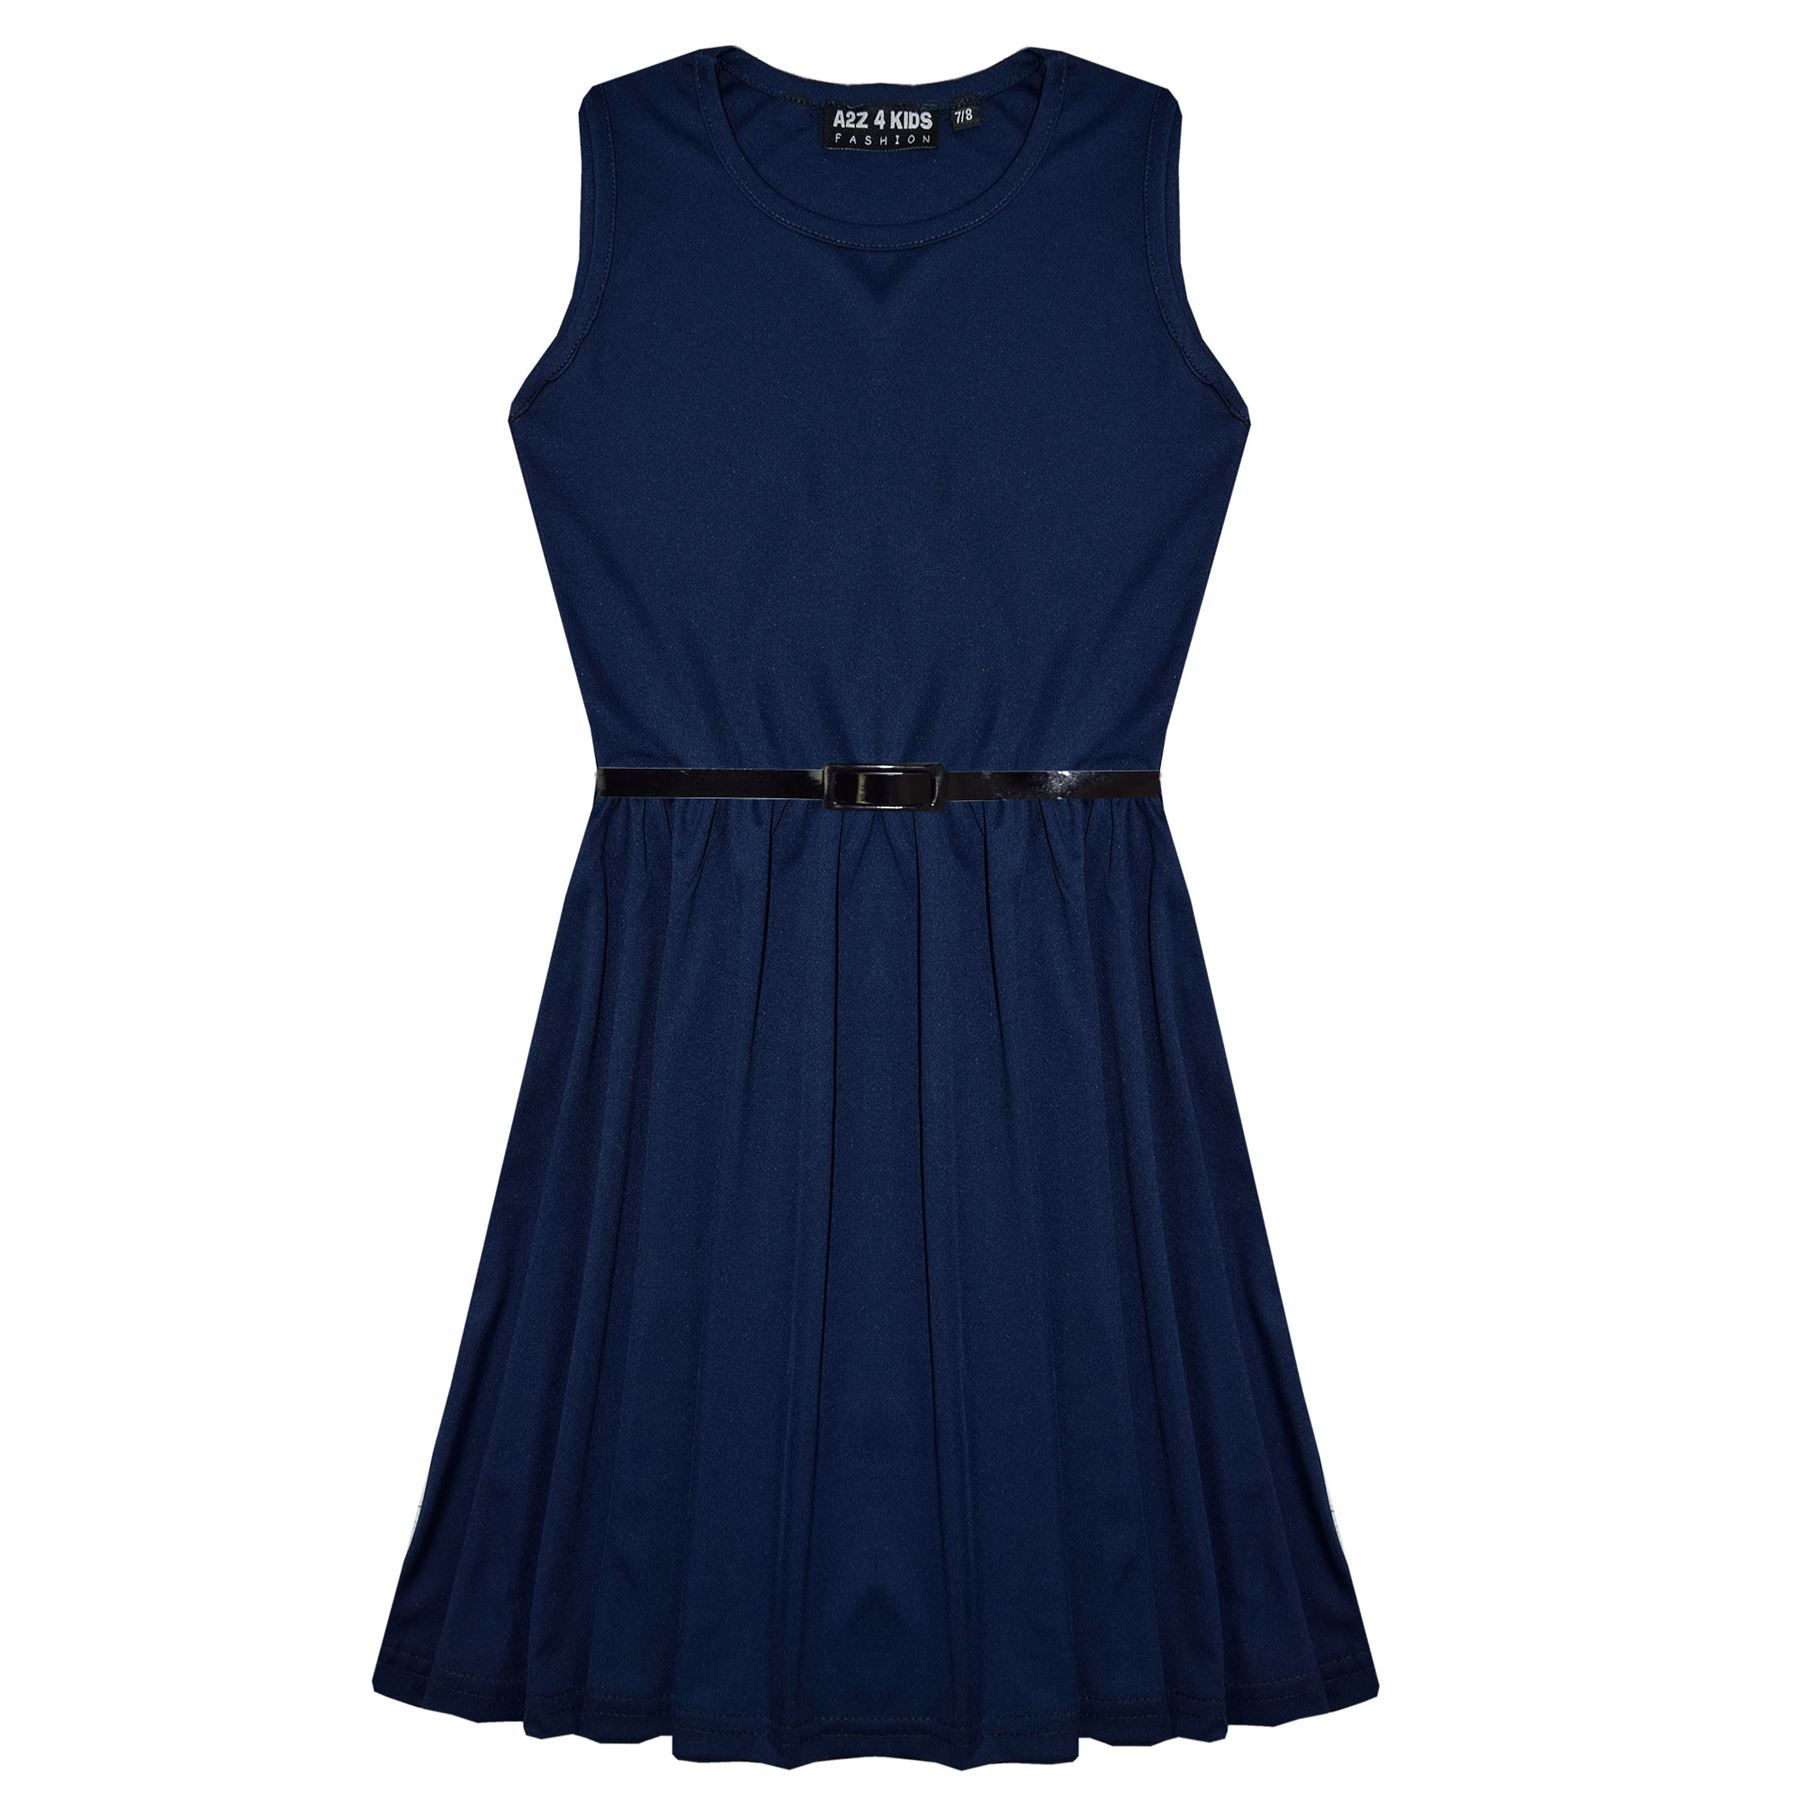 Girls-Skater-Dress-Kids-Party-Dresses-With-Free-Belt-5-6-7-8-9-10-11-12-13-Years miniatuur 41